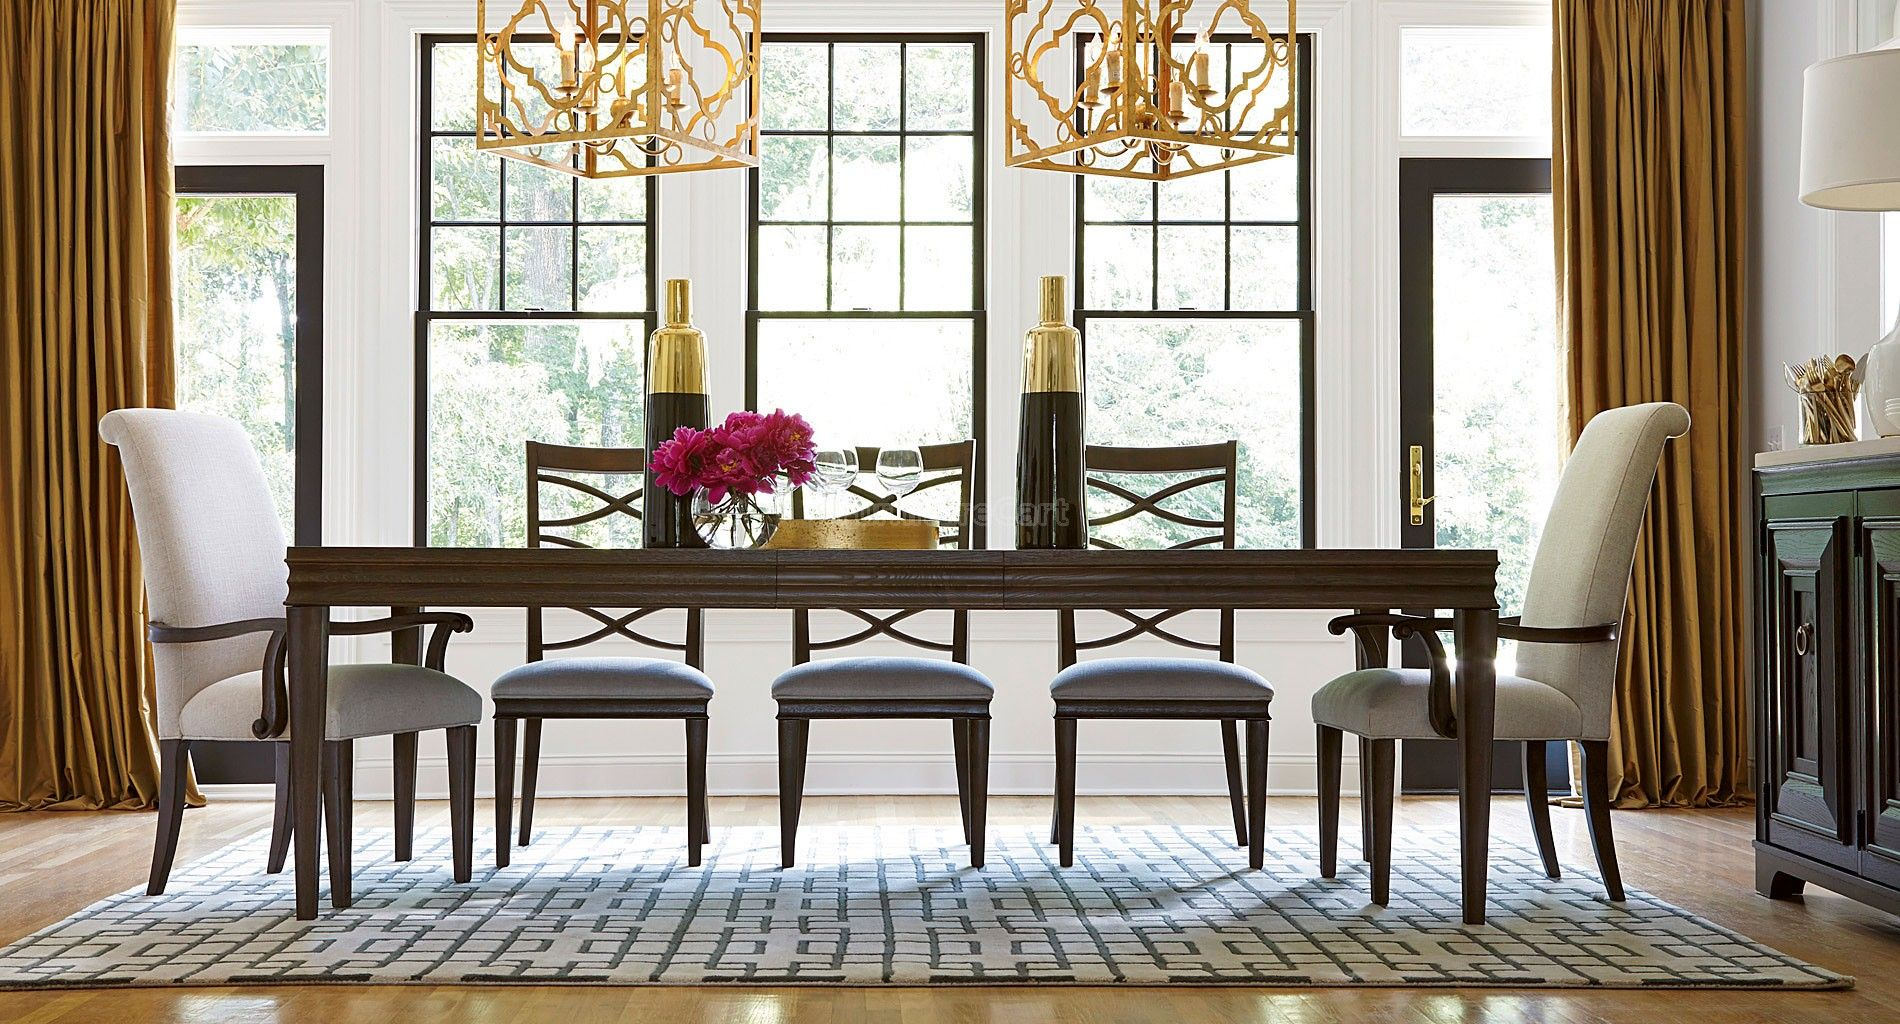 California Dining Room Set W Chair Choices Hollywood Hills